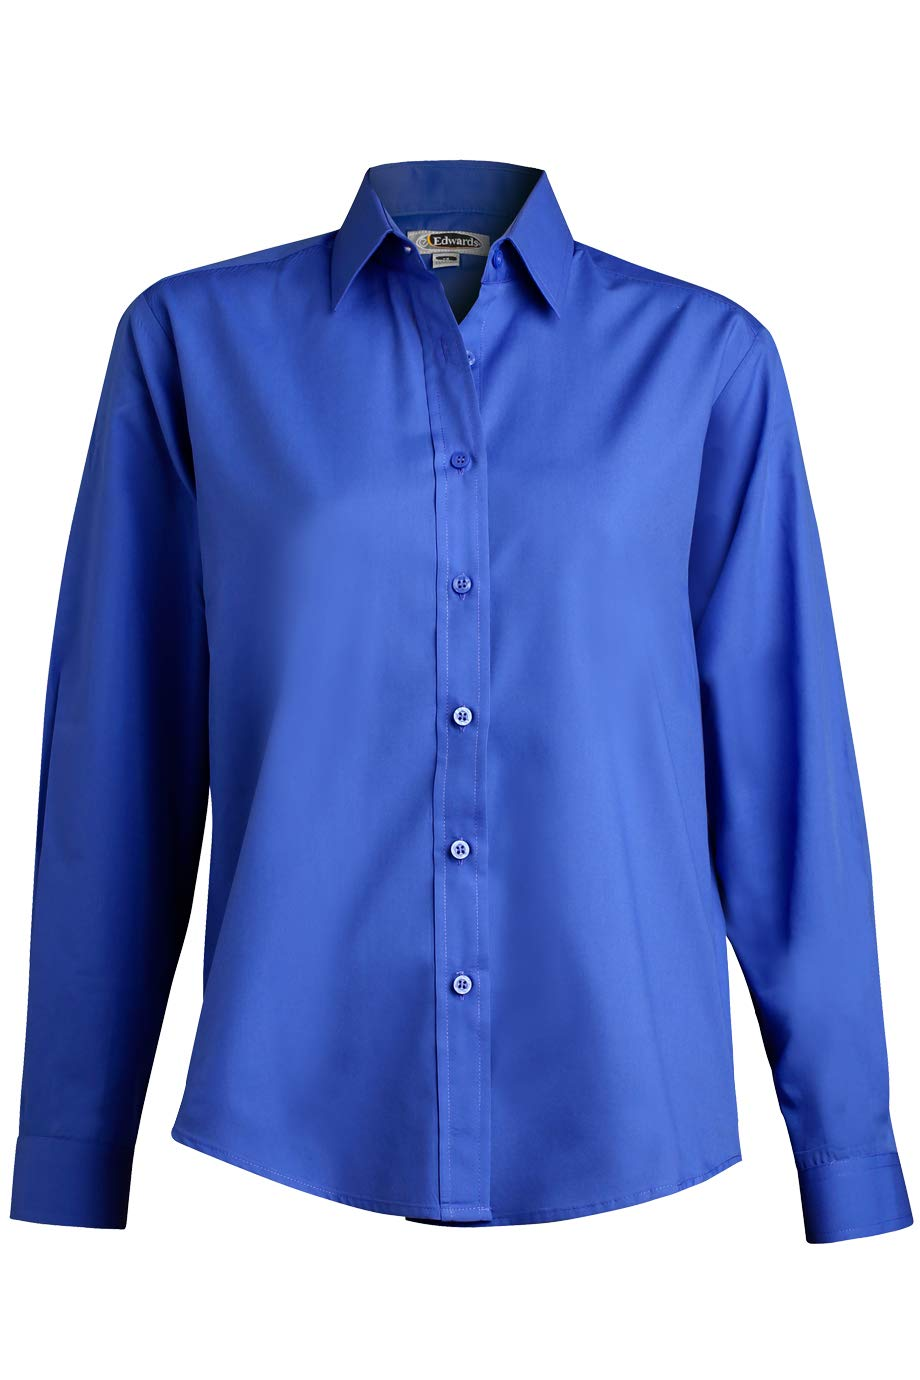 Edwards Ladies' Long Sleeve Value Broadcloth Shirt Large Royal by Edwards